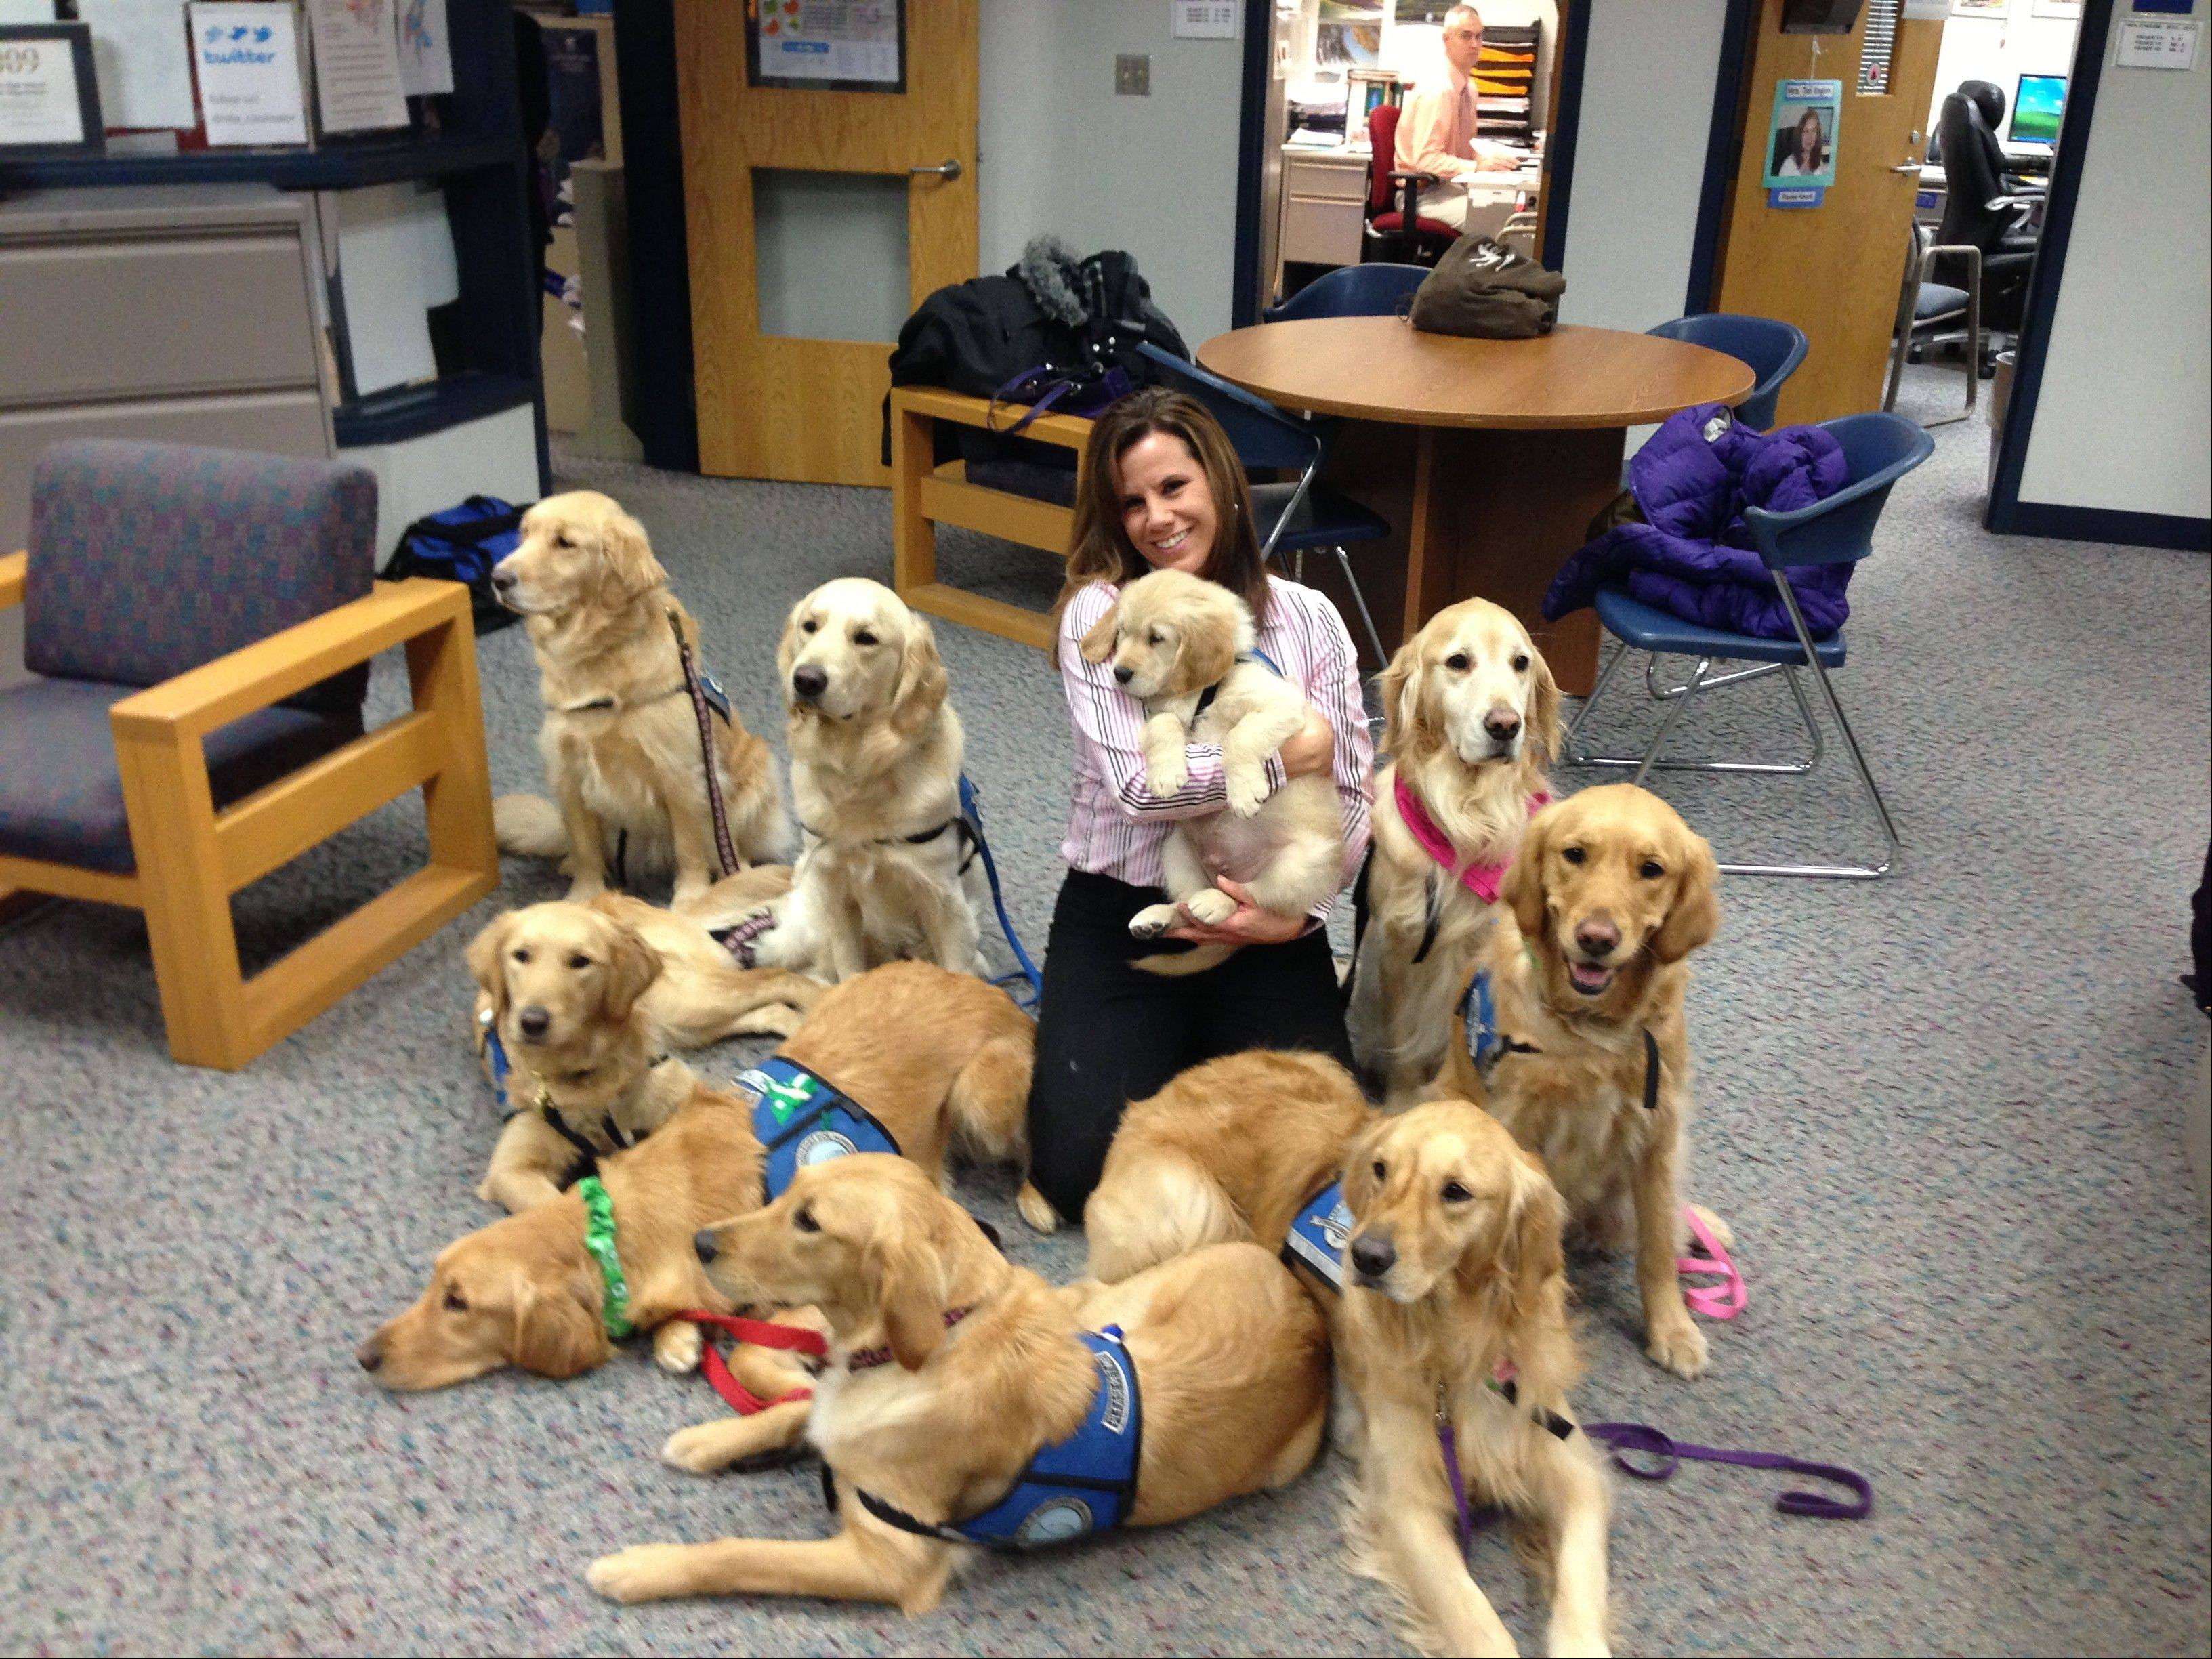 Newtown High School Counselor Deidre Croce holds Isaiah, a 9-week-old puppy in training, while surrounded by other golden retrievers sent by Lutheran Church Charities. The Addison-based group is teaming up with Harper College to train handlers of Comfort Dogs.